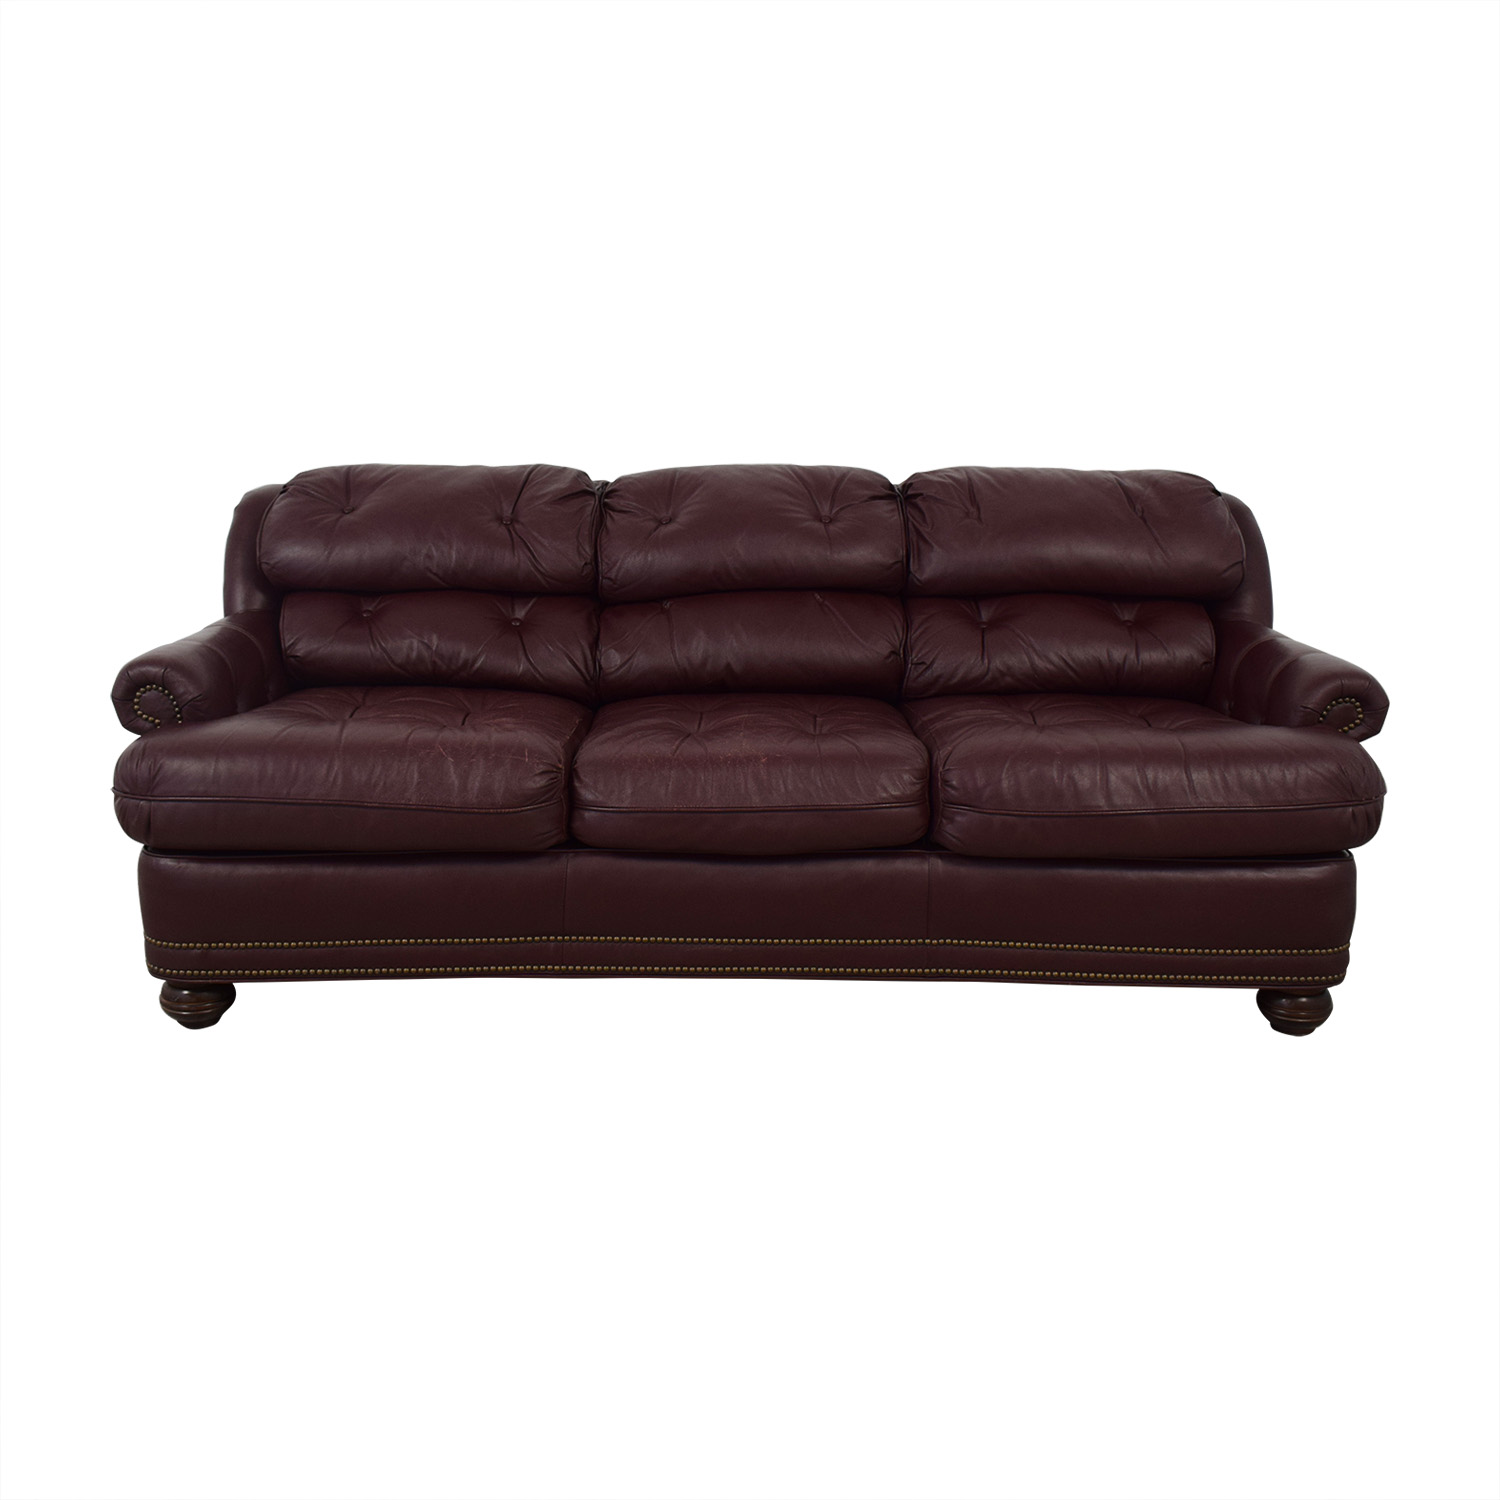 Distinctions Furniture Distinctions Furniture Red Nailhead Sofa price